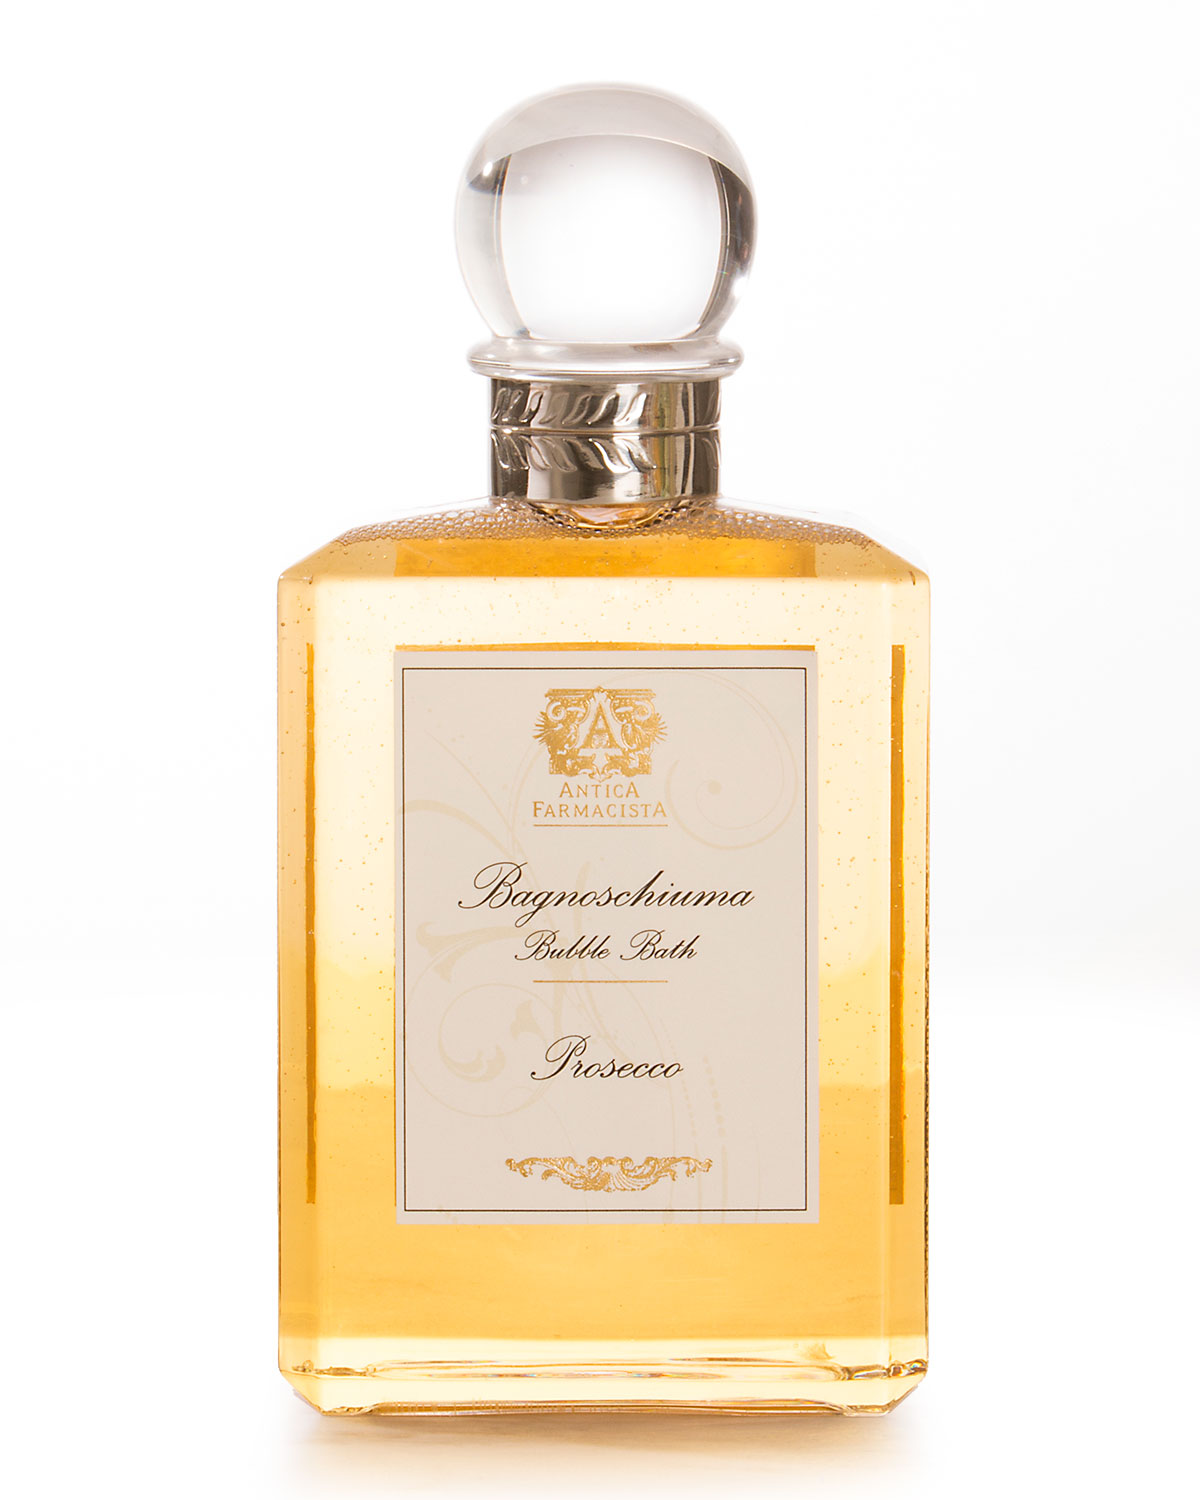 Prosecco Bubble Bath by Neiman marcus